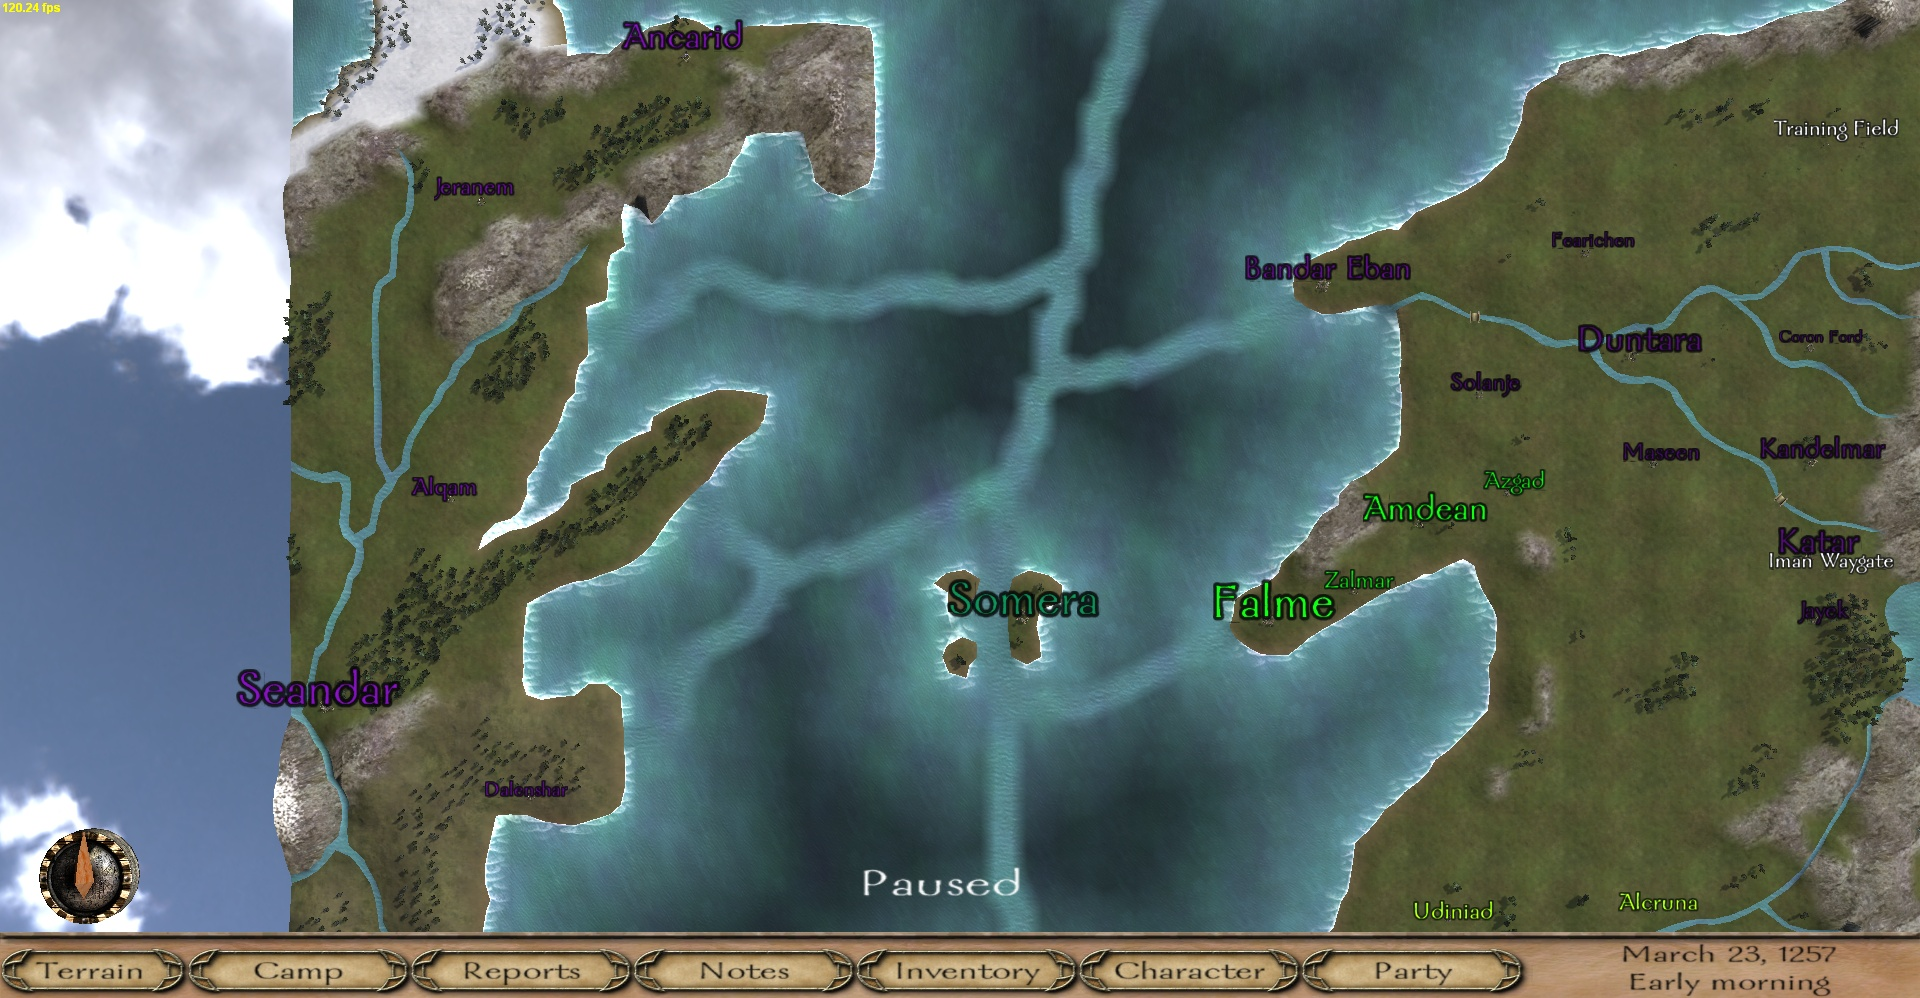 The gathering storm a wheel of time mod at mount blade warband map seanchan gumiabroncs Choice Image